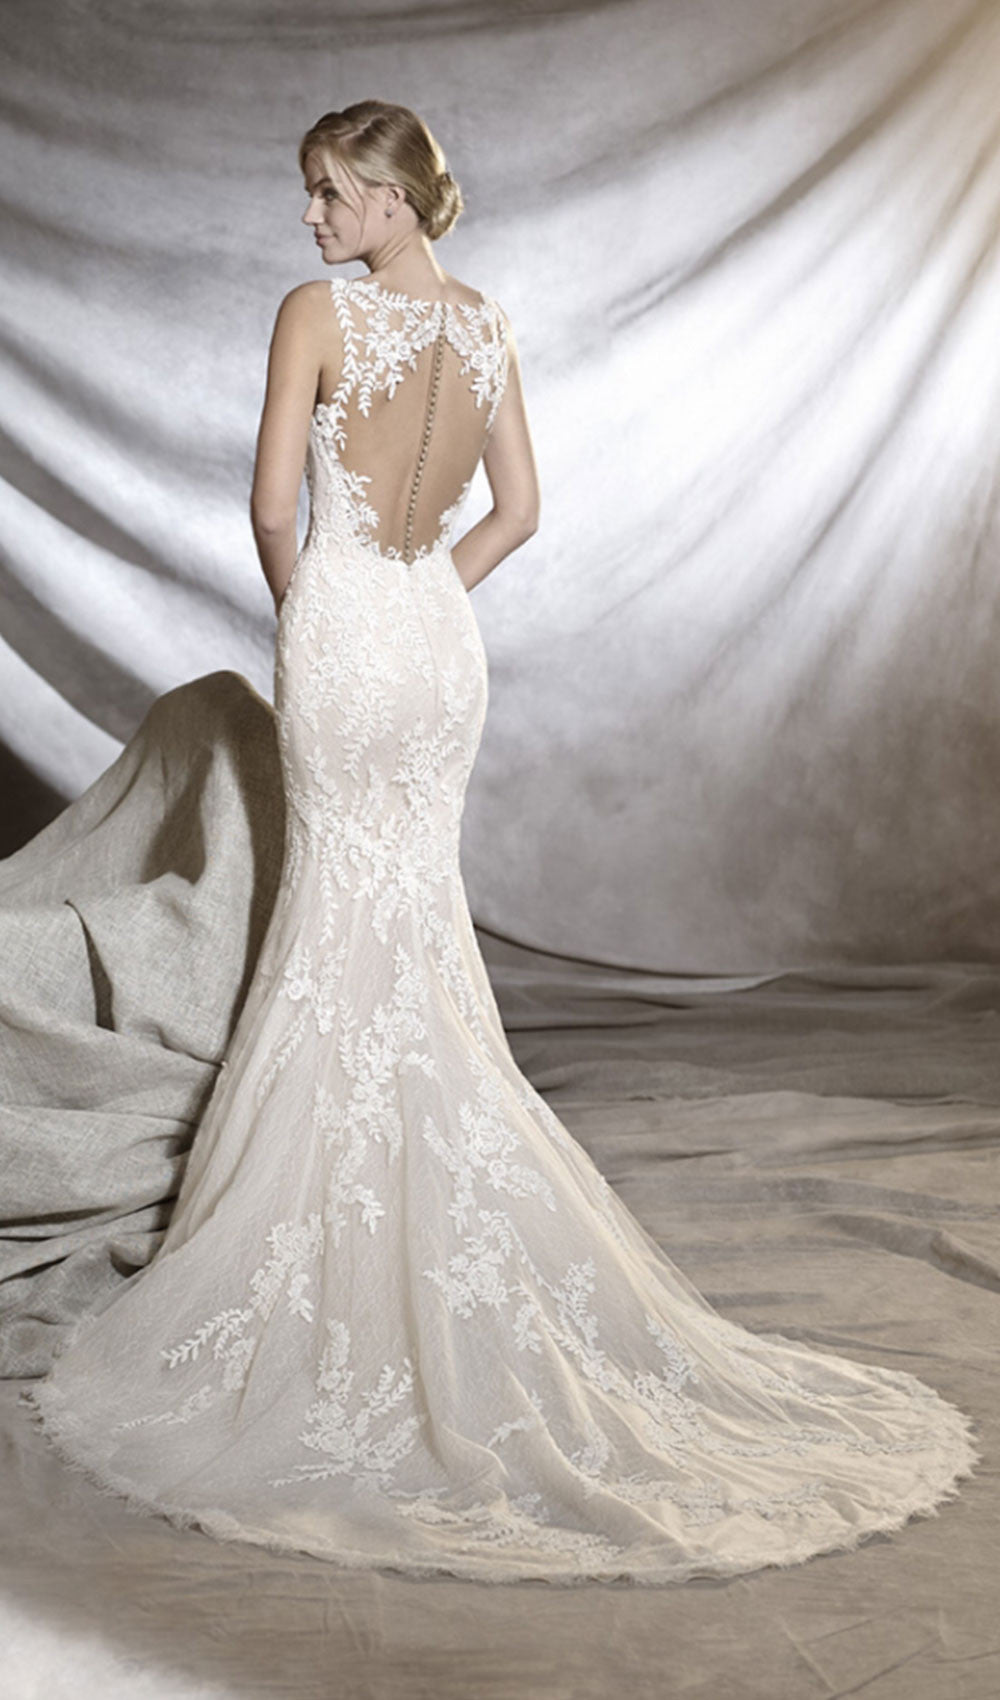 Pronovias - STYLE ORLARA| Schaffer's Bridal in Des Moines, Iowa and in Scottsdale, Arizona